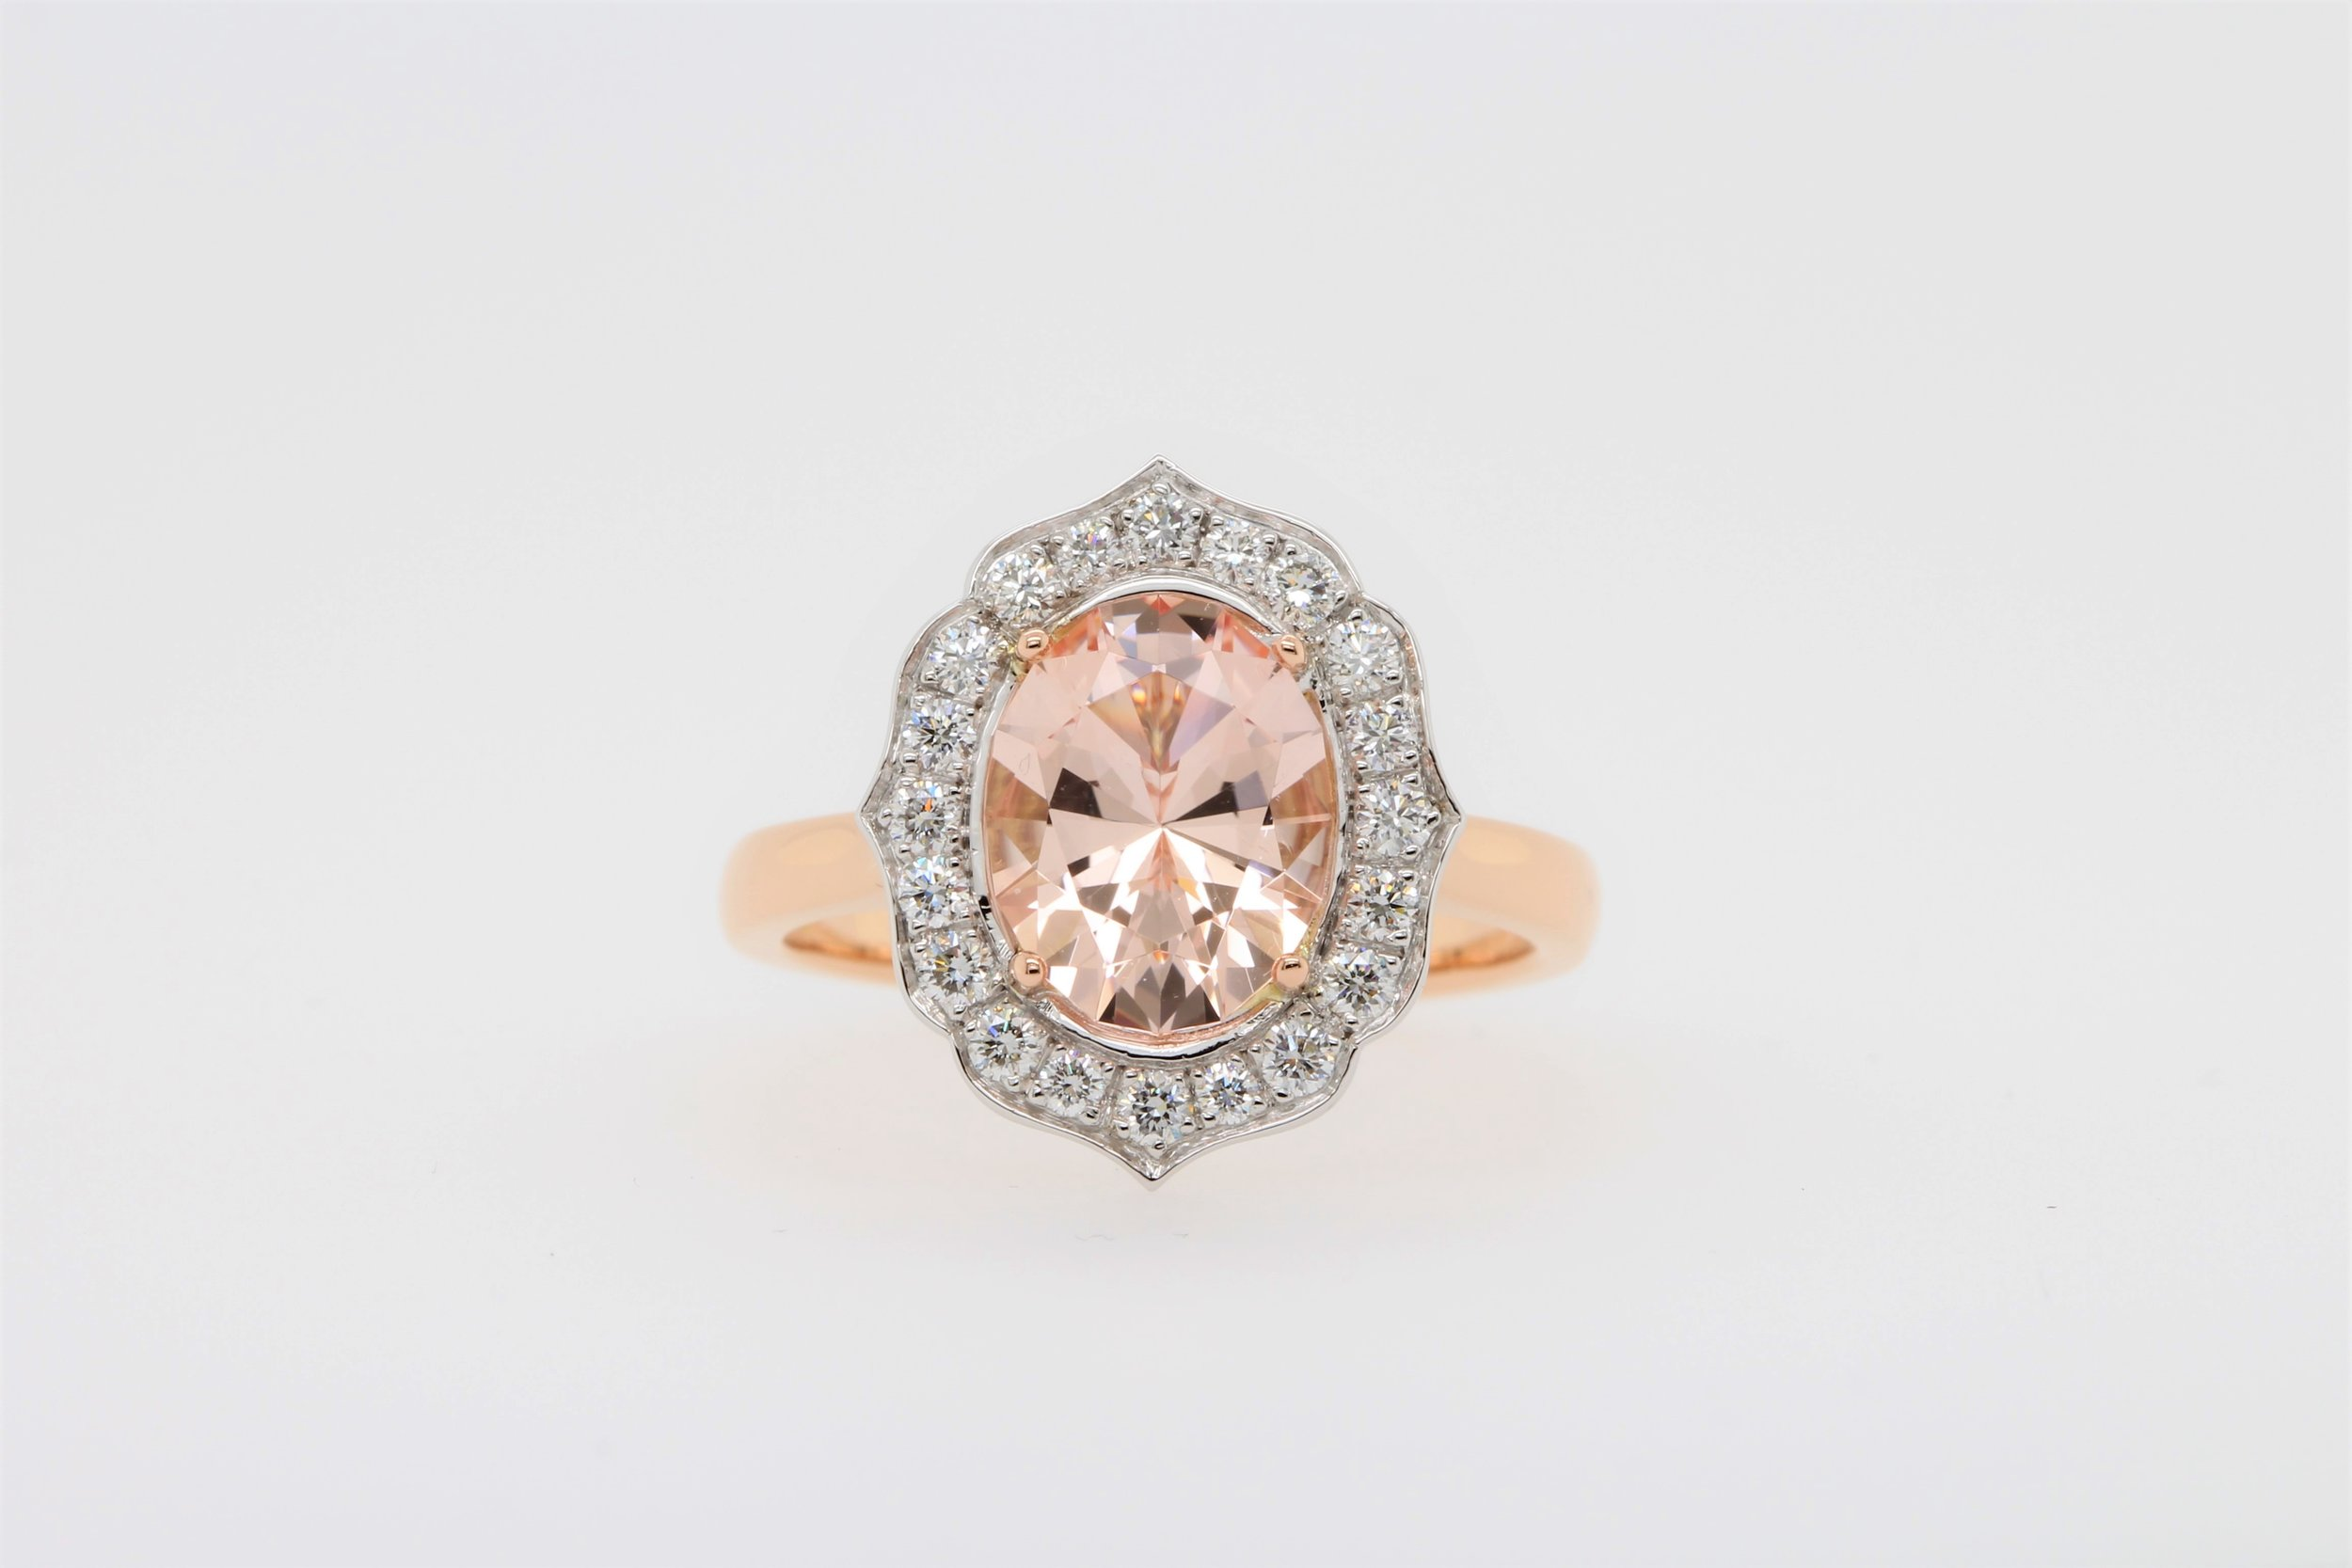 Stephanie and Joel's complete Morganite and Diamond Engagement Ring.